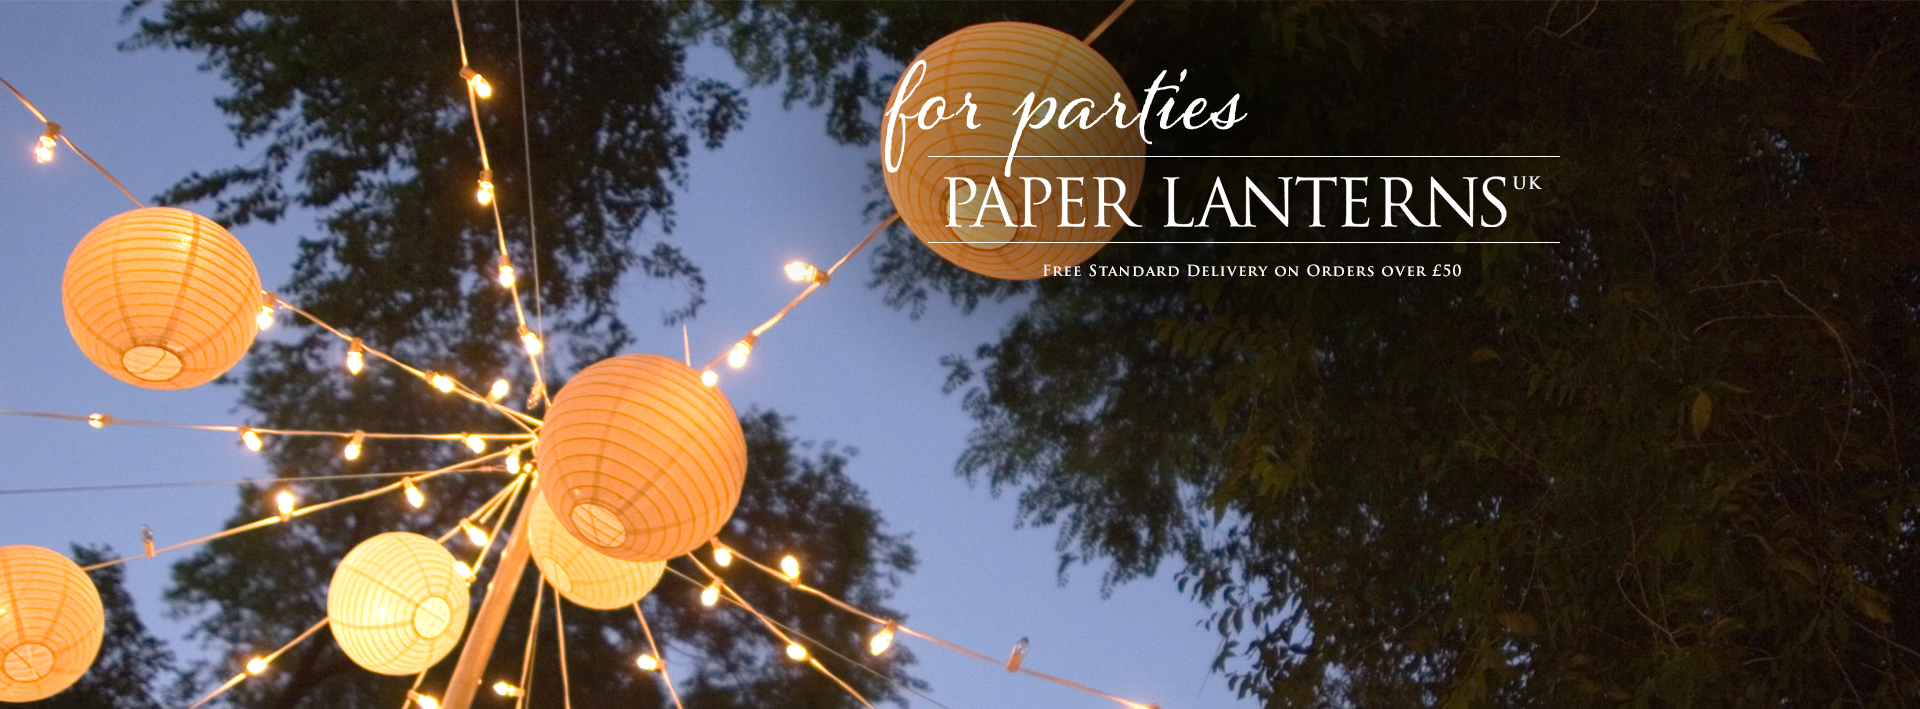 Paper Lanterns for parties